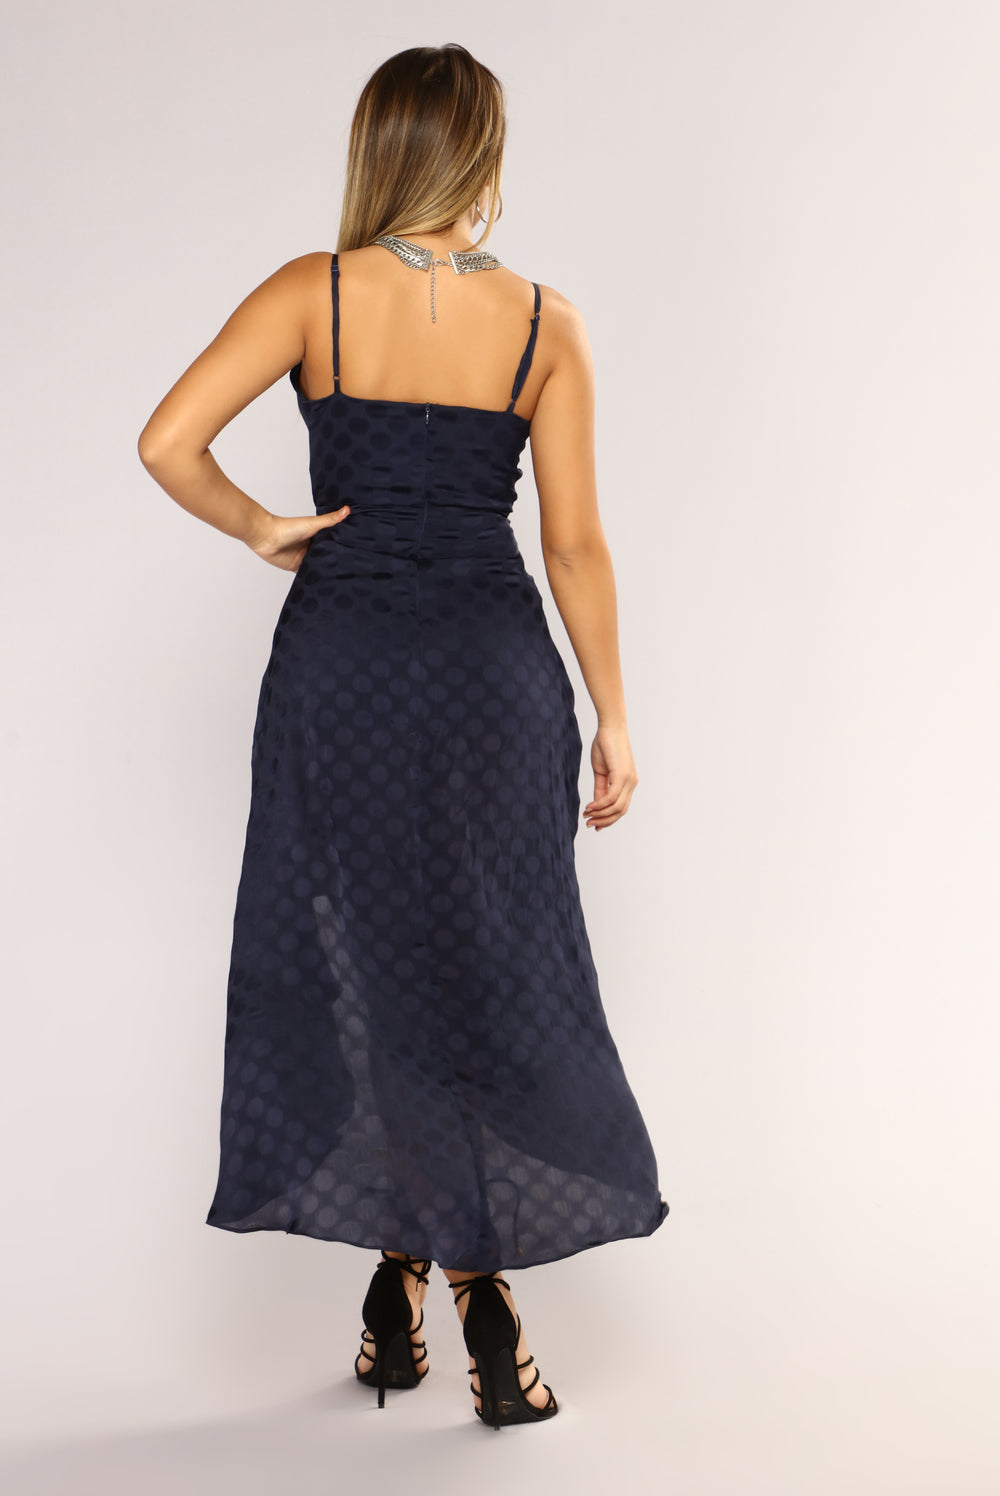 Pay Day Maxi Dress - Navy